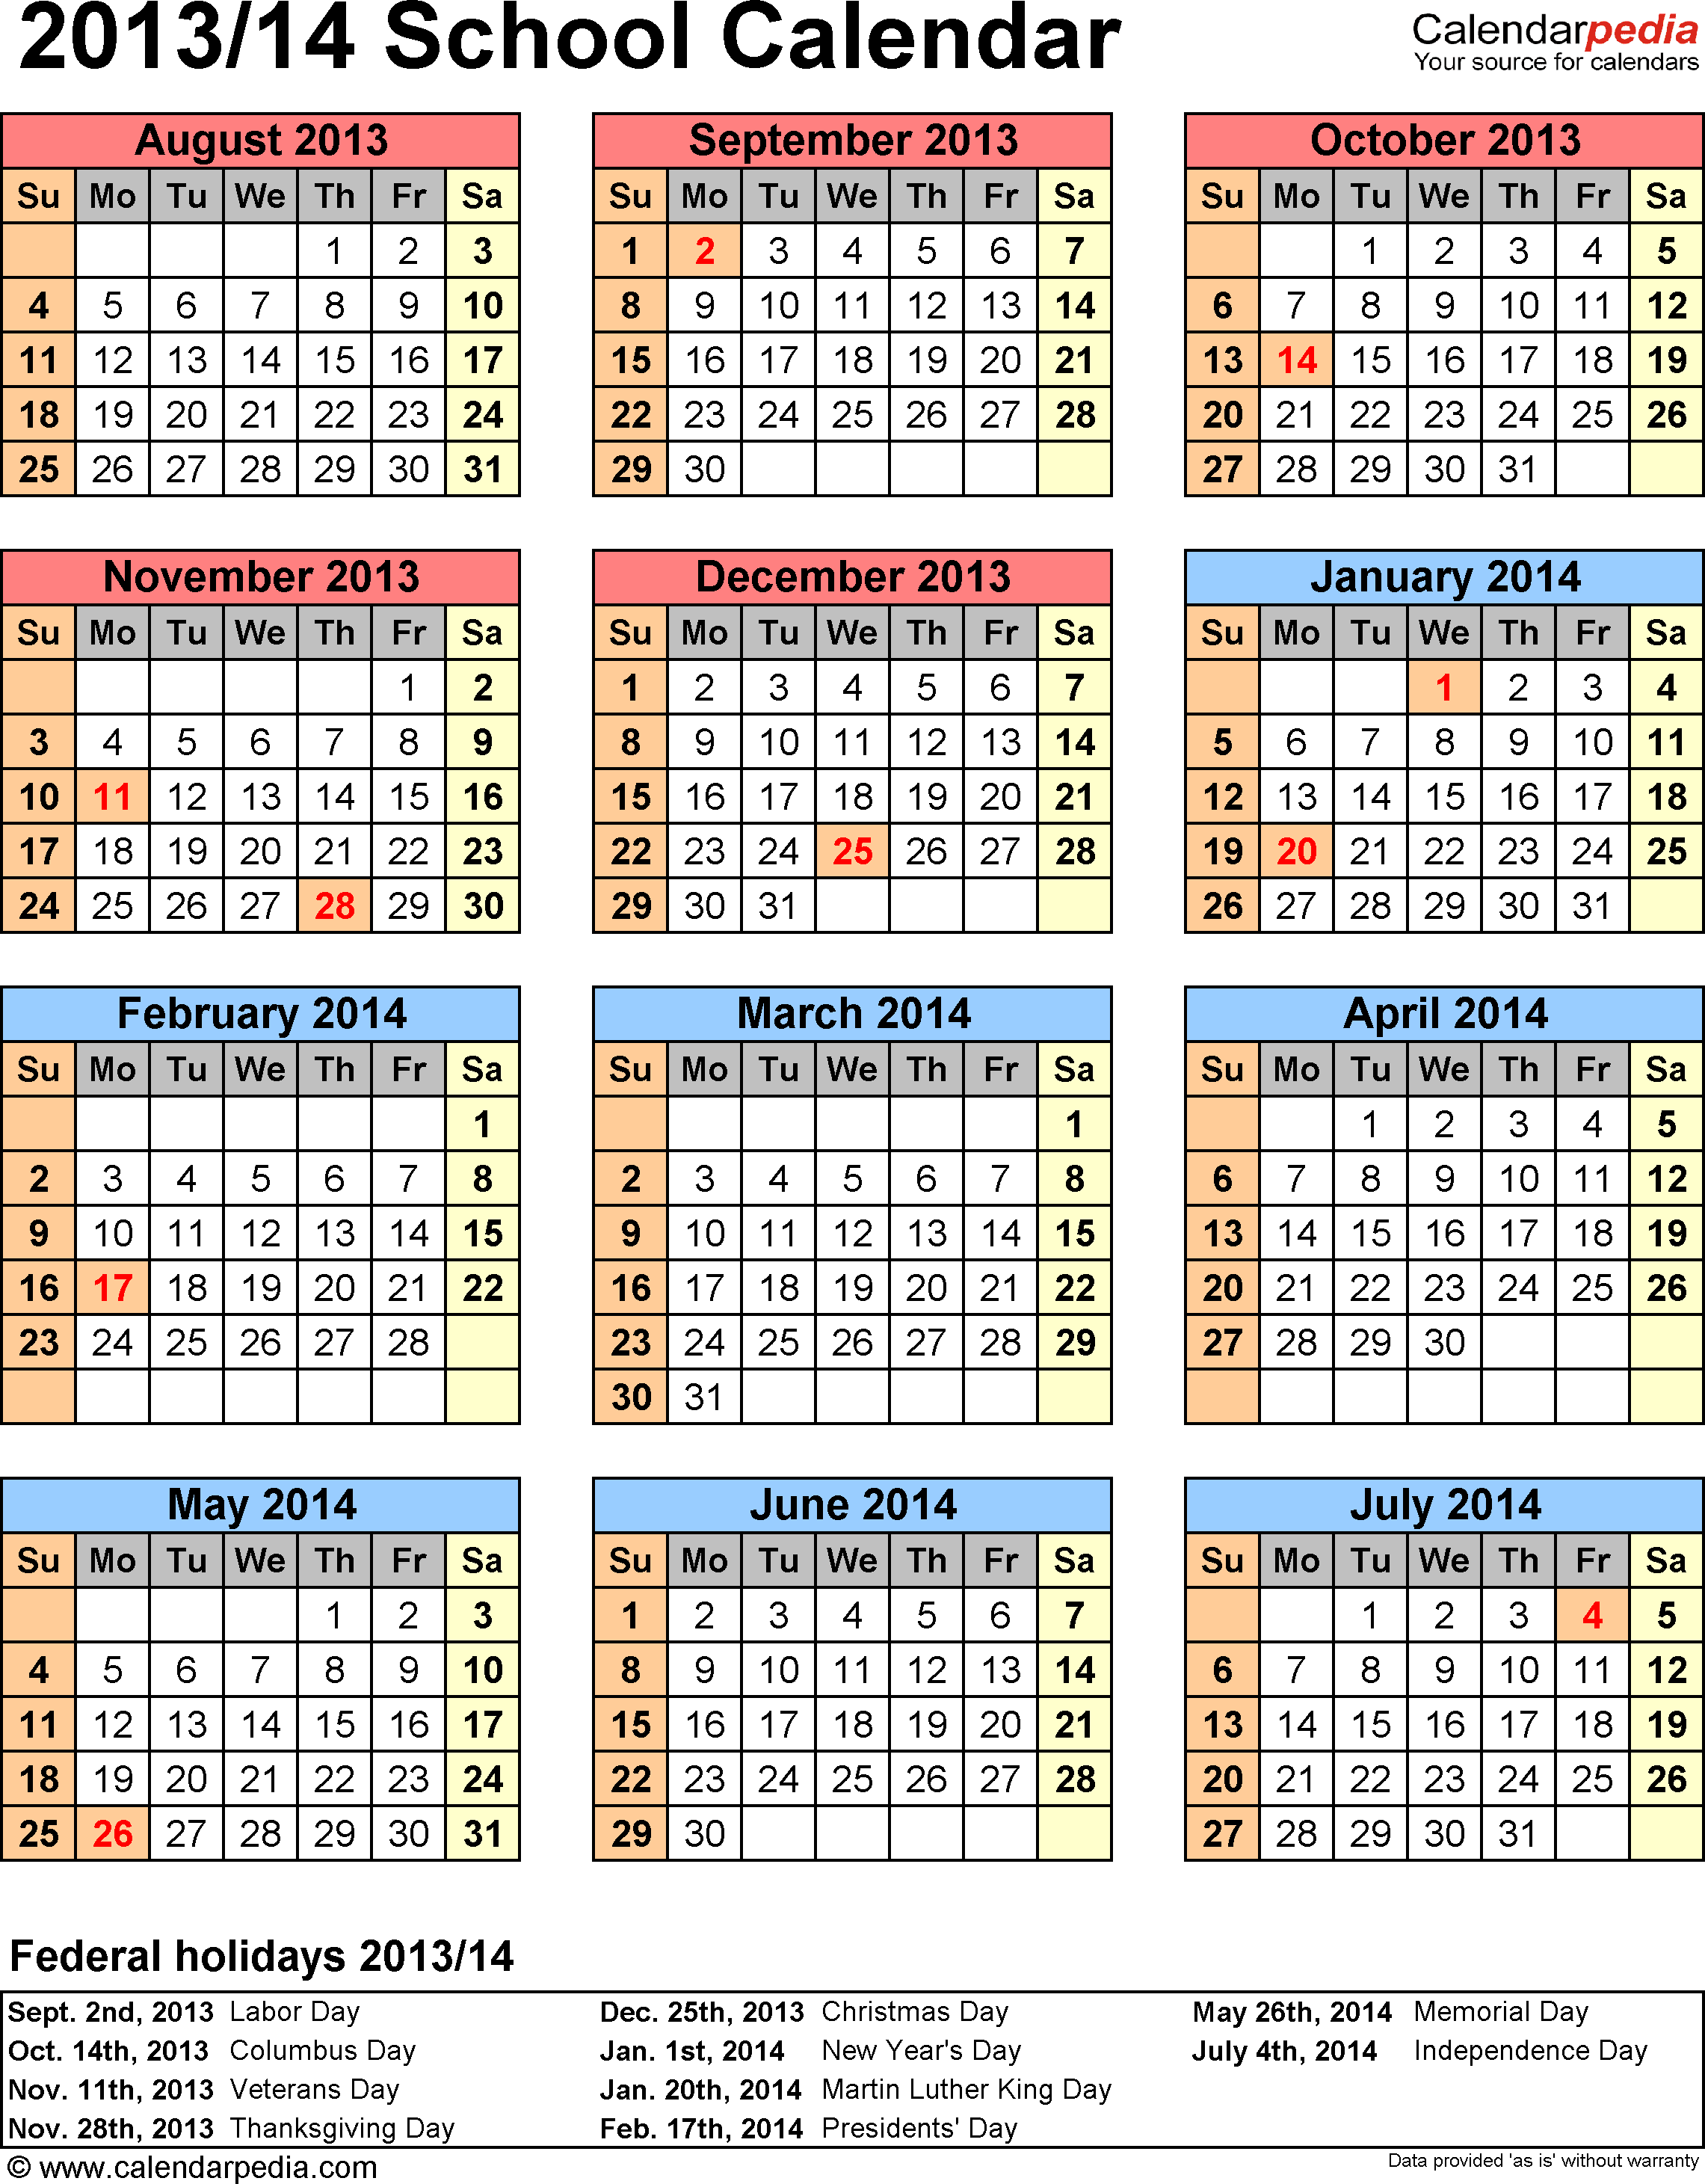 Template 6: School calendar 2013/14 for PDF, portrait orientation, year at a glance, 1 page